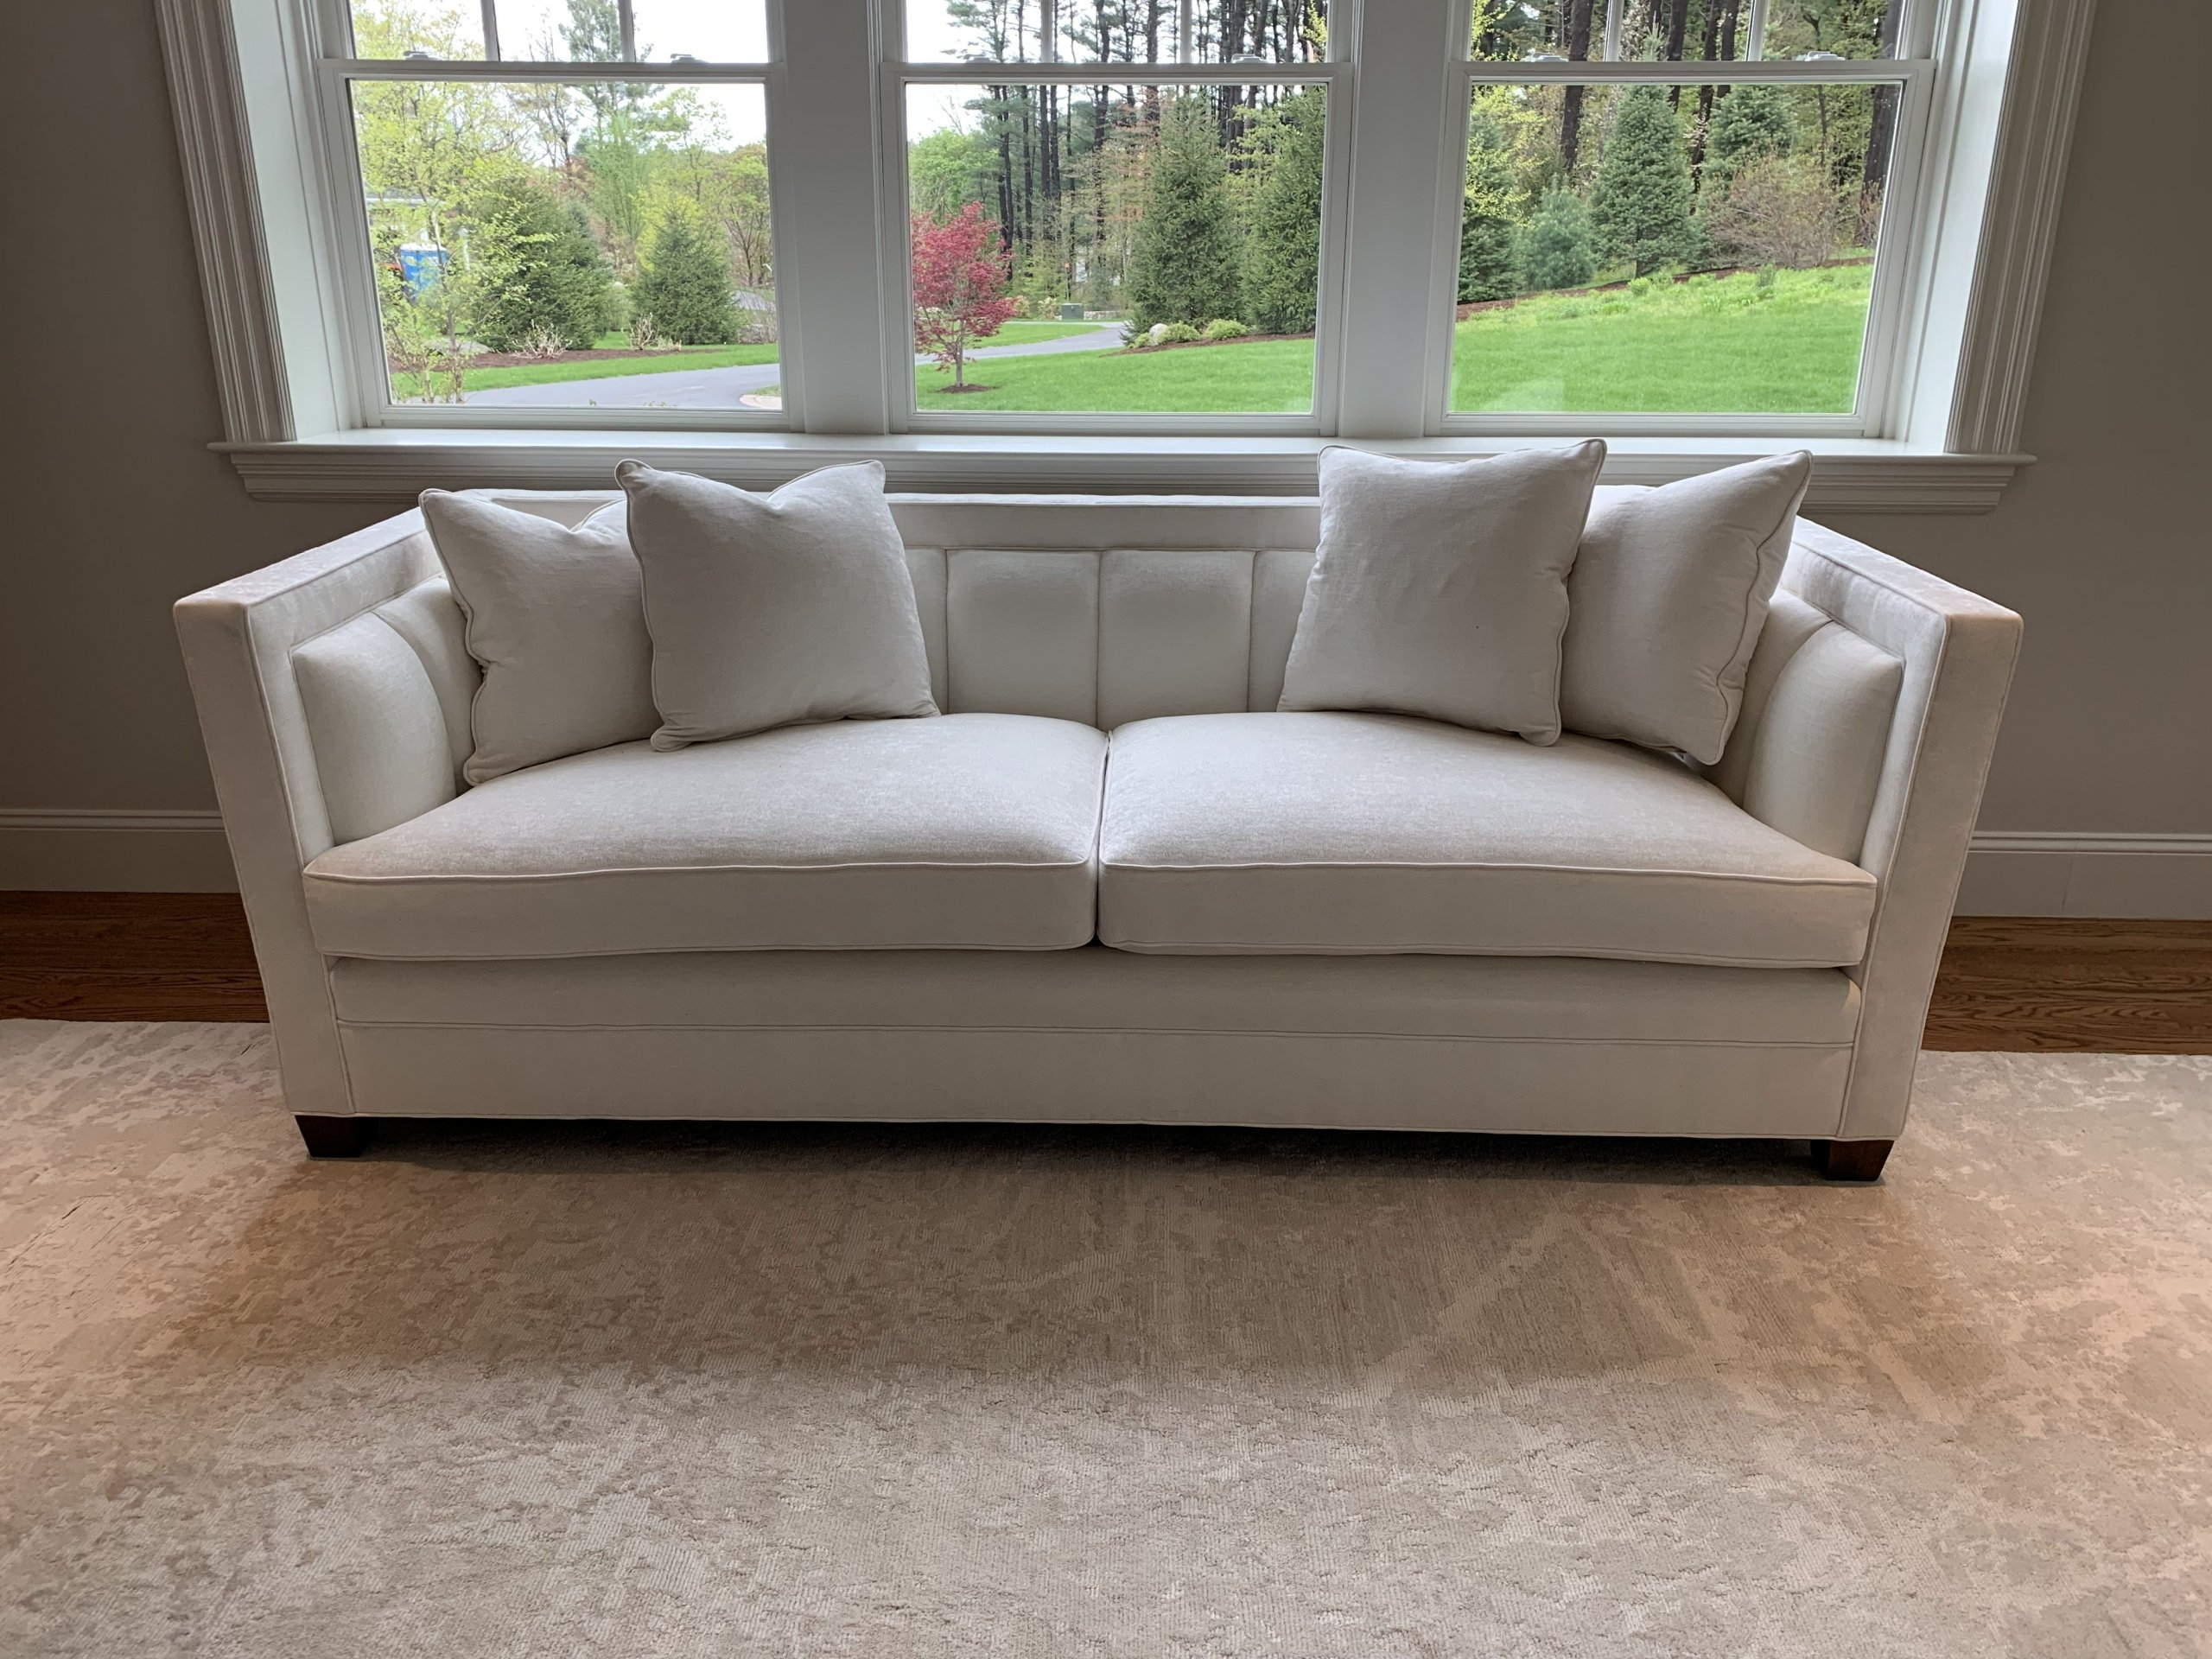 custom upholstered white sofa